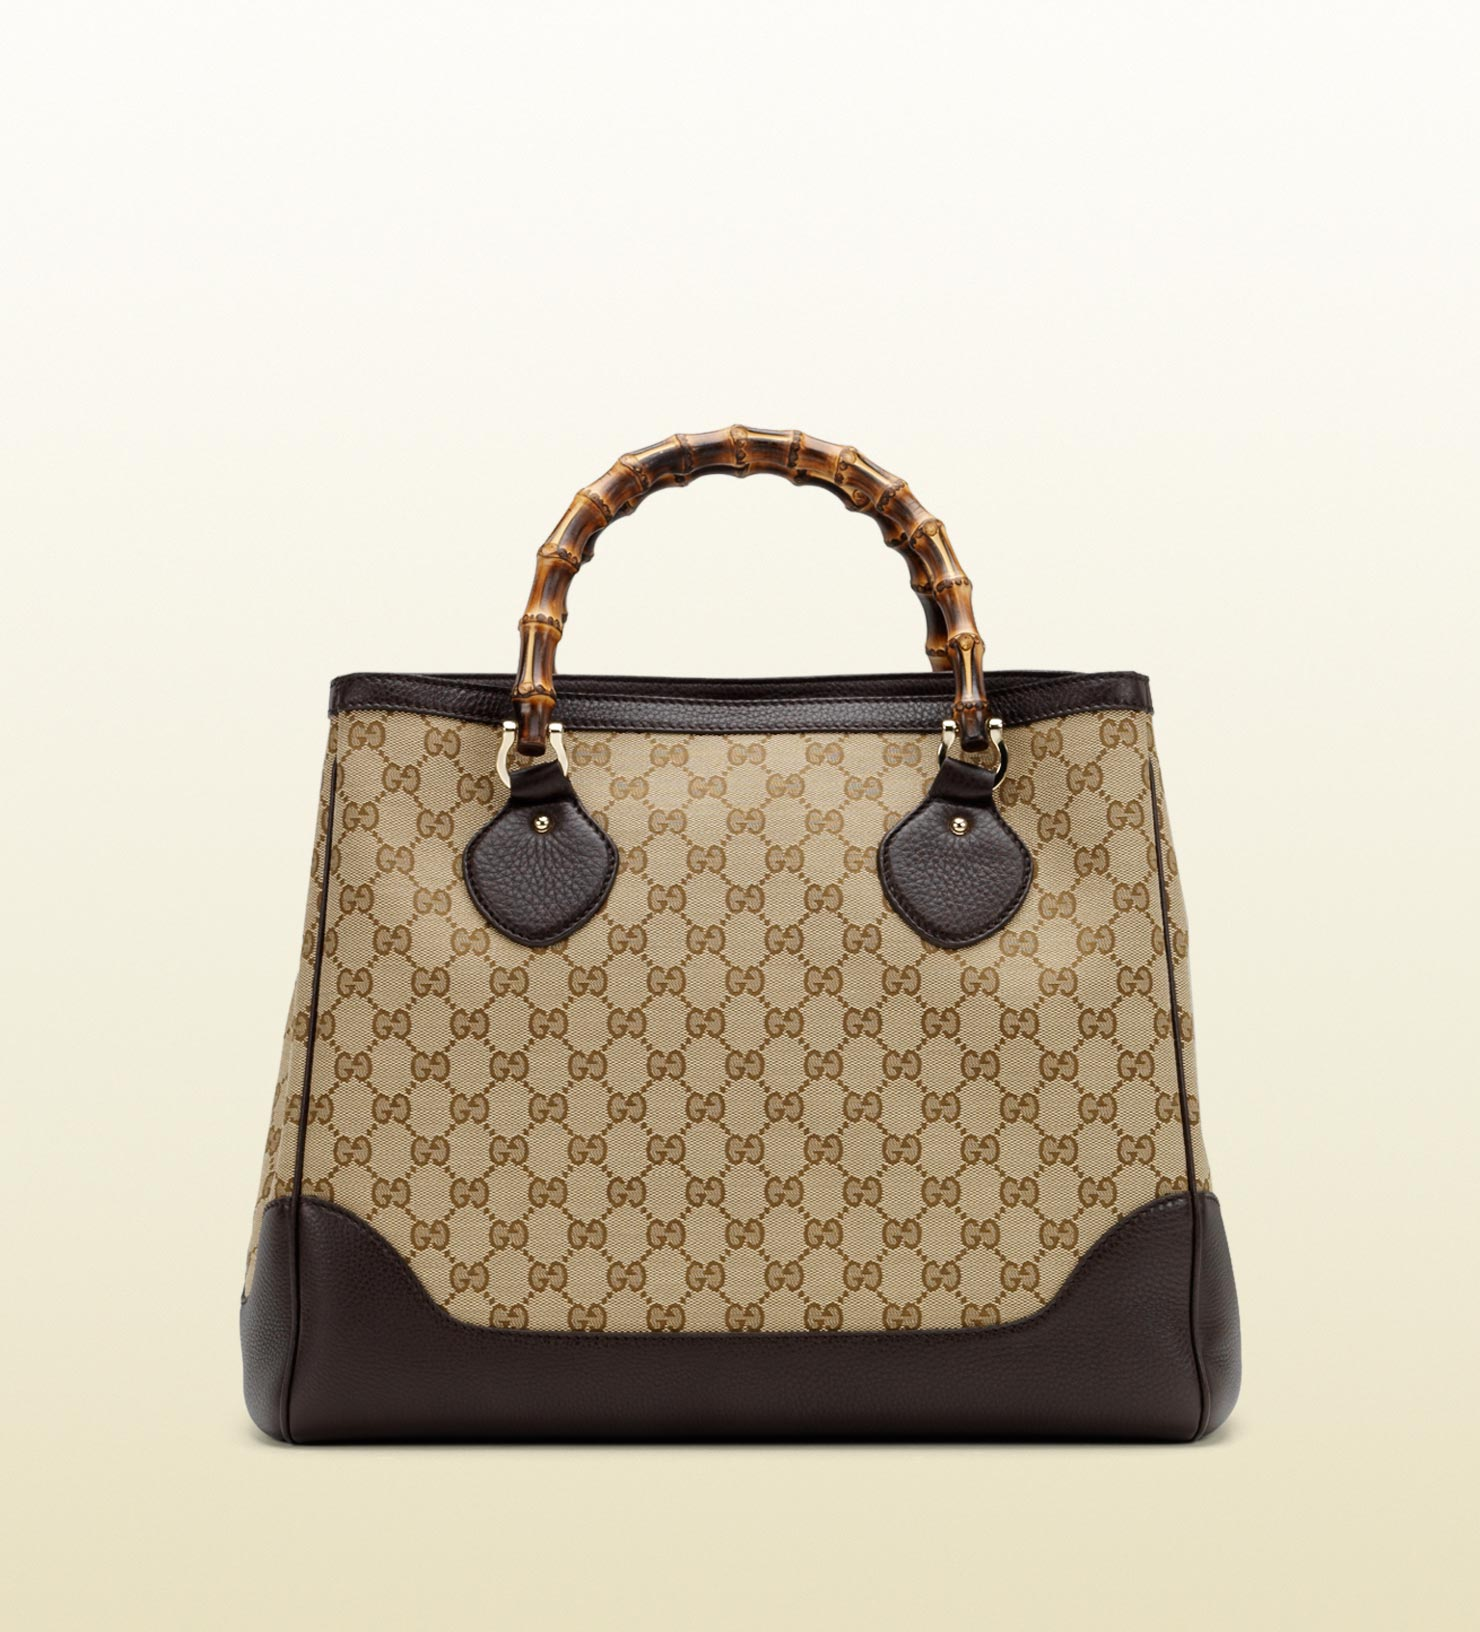 1c4c1e068412c4 Gucci Diana Bamboo Handle Tote in Brown - Lyst